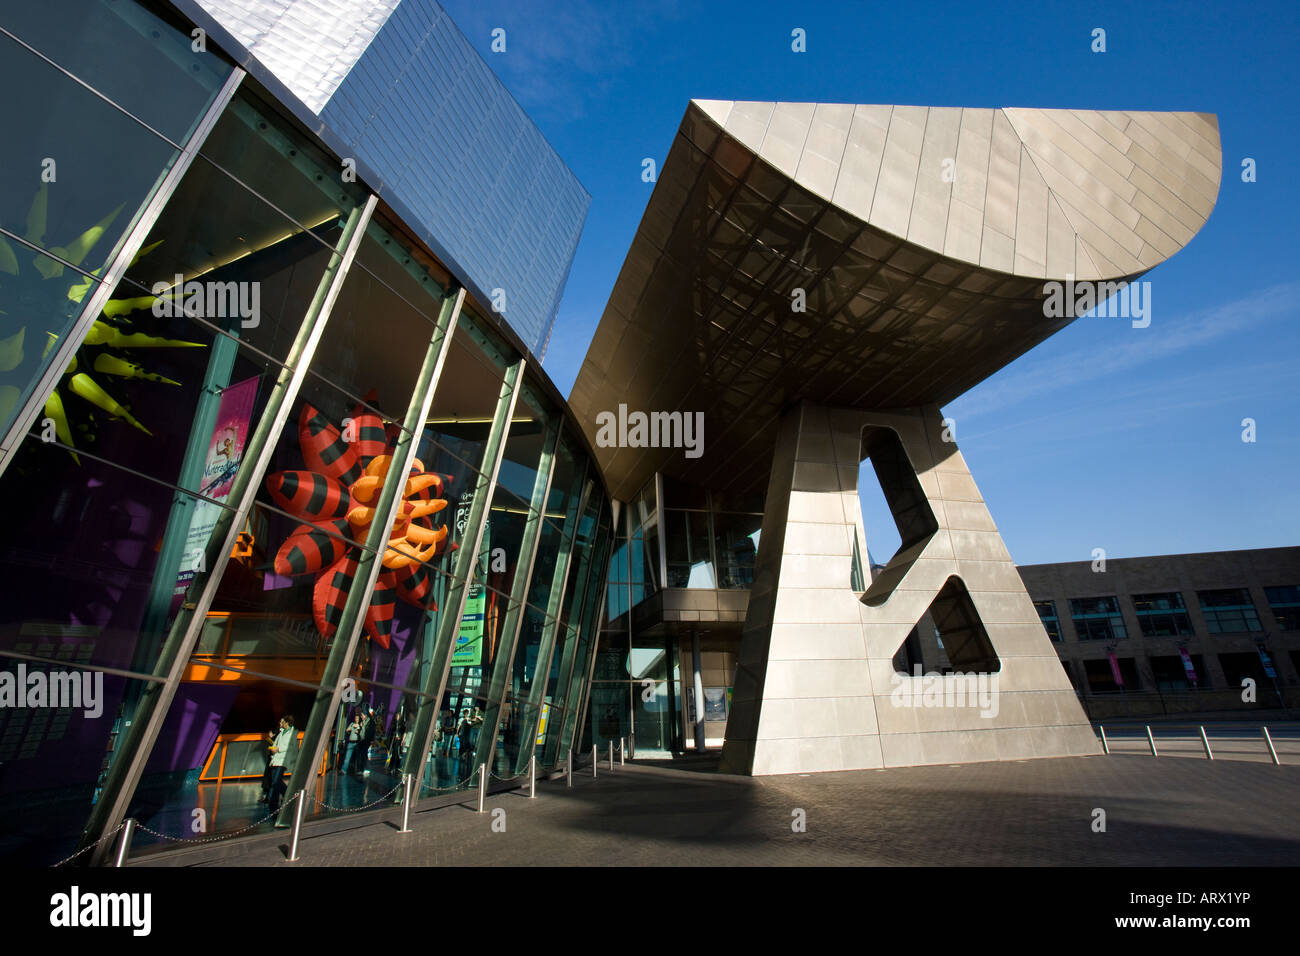 The Lowery Centre in Salford Quays Manchester in England - Stock Image